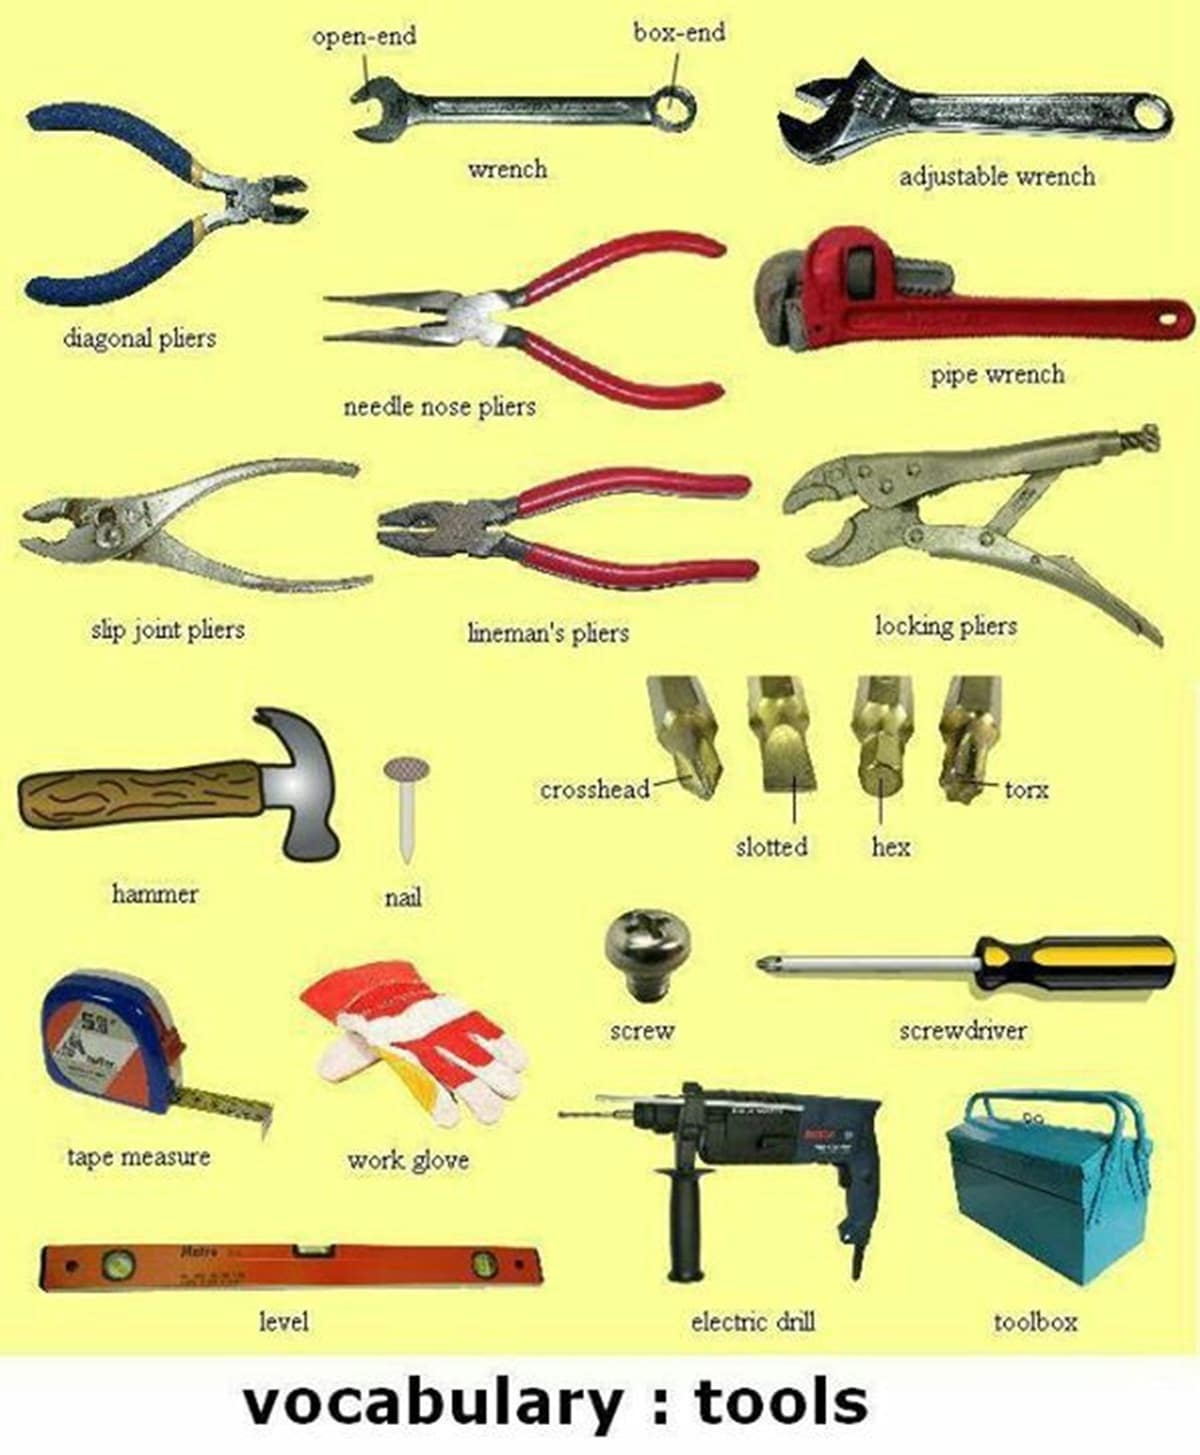 Tools and equipment vocabulary 150 items illustrated for Common garden hand tools